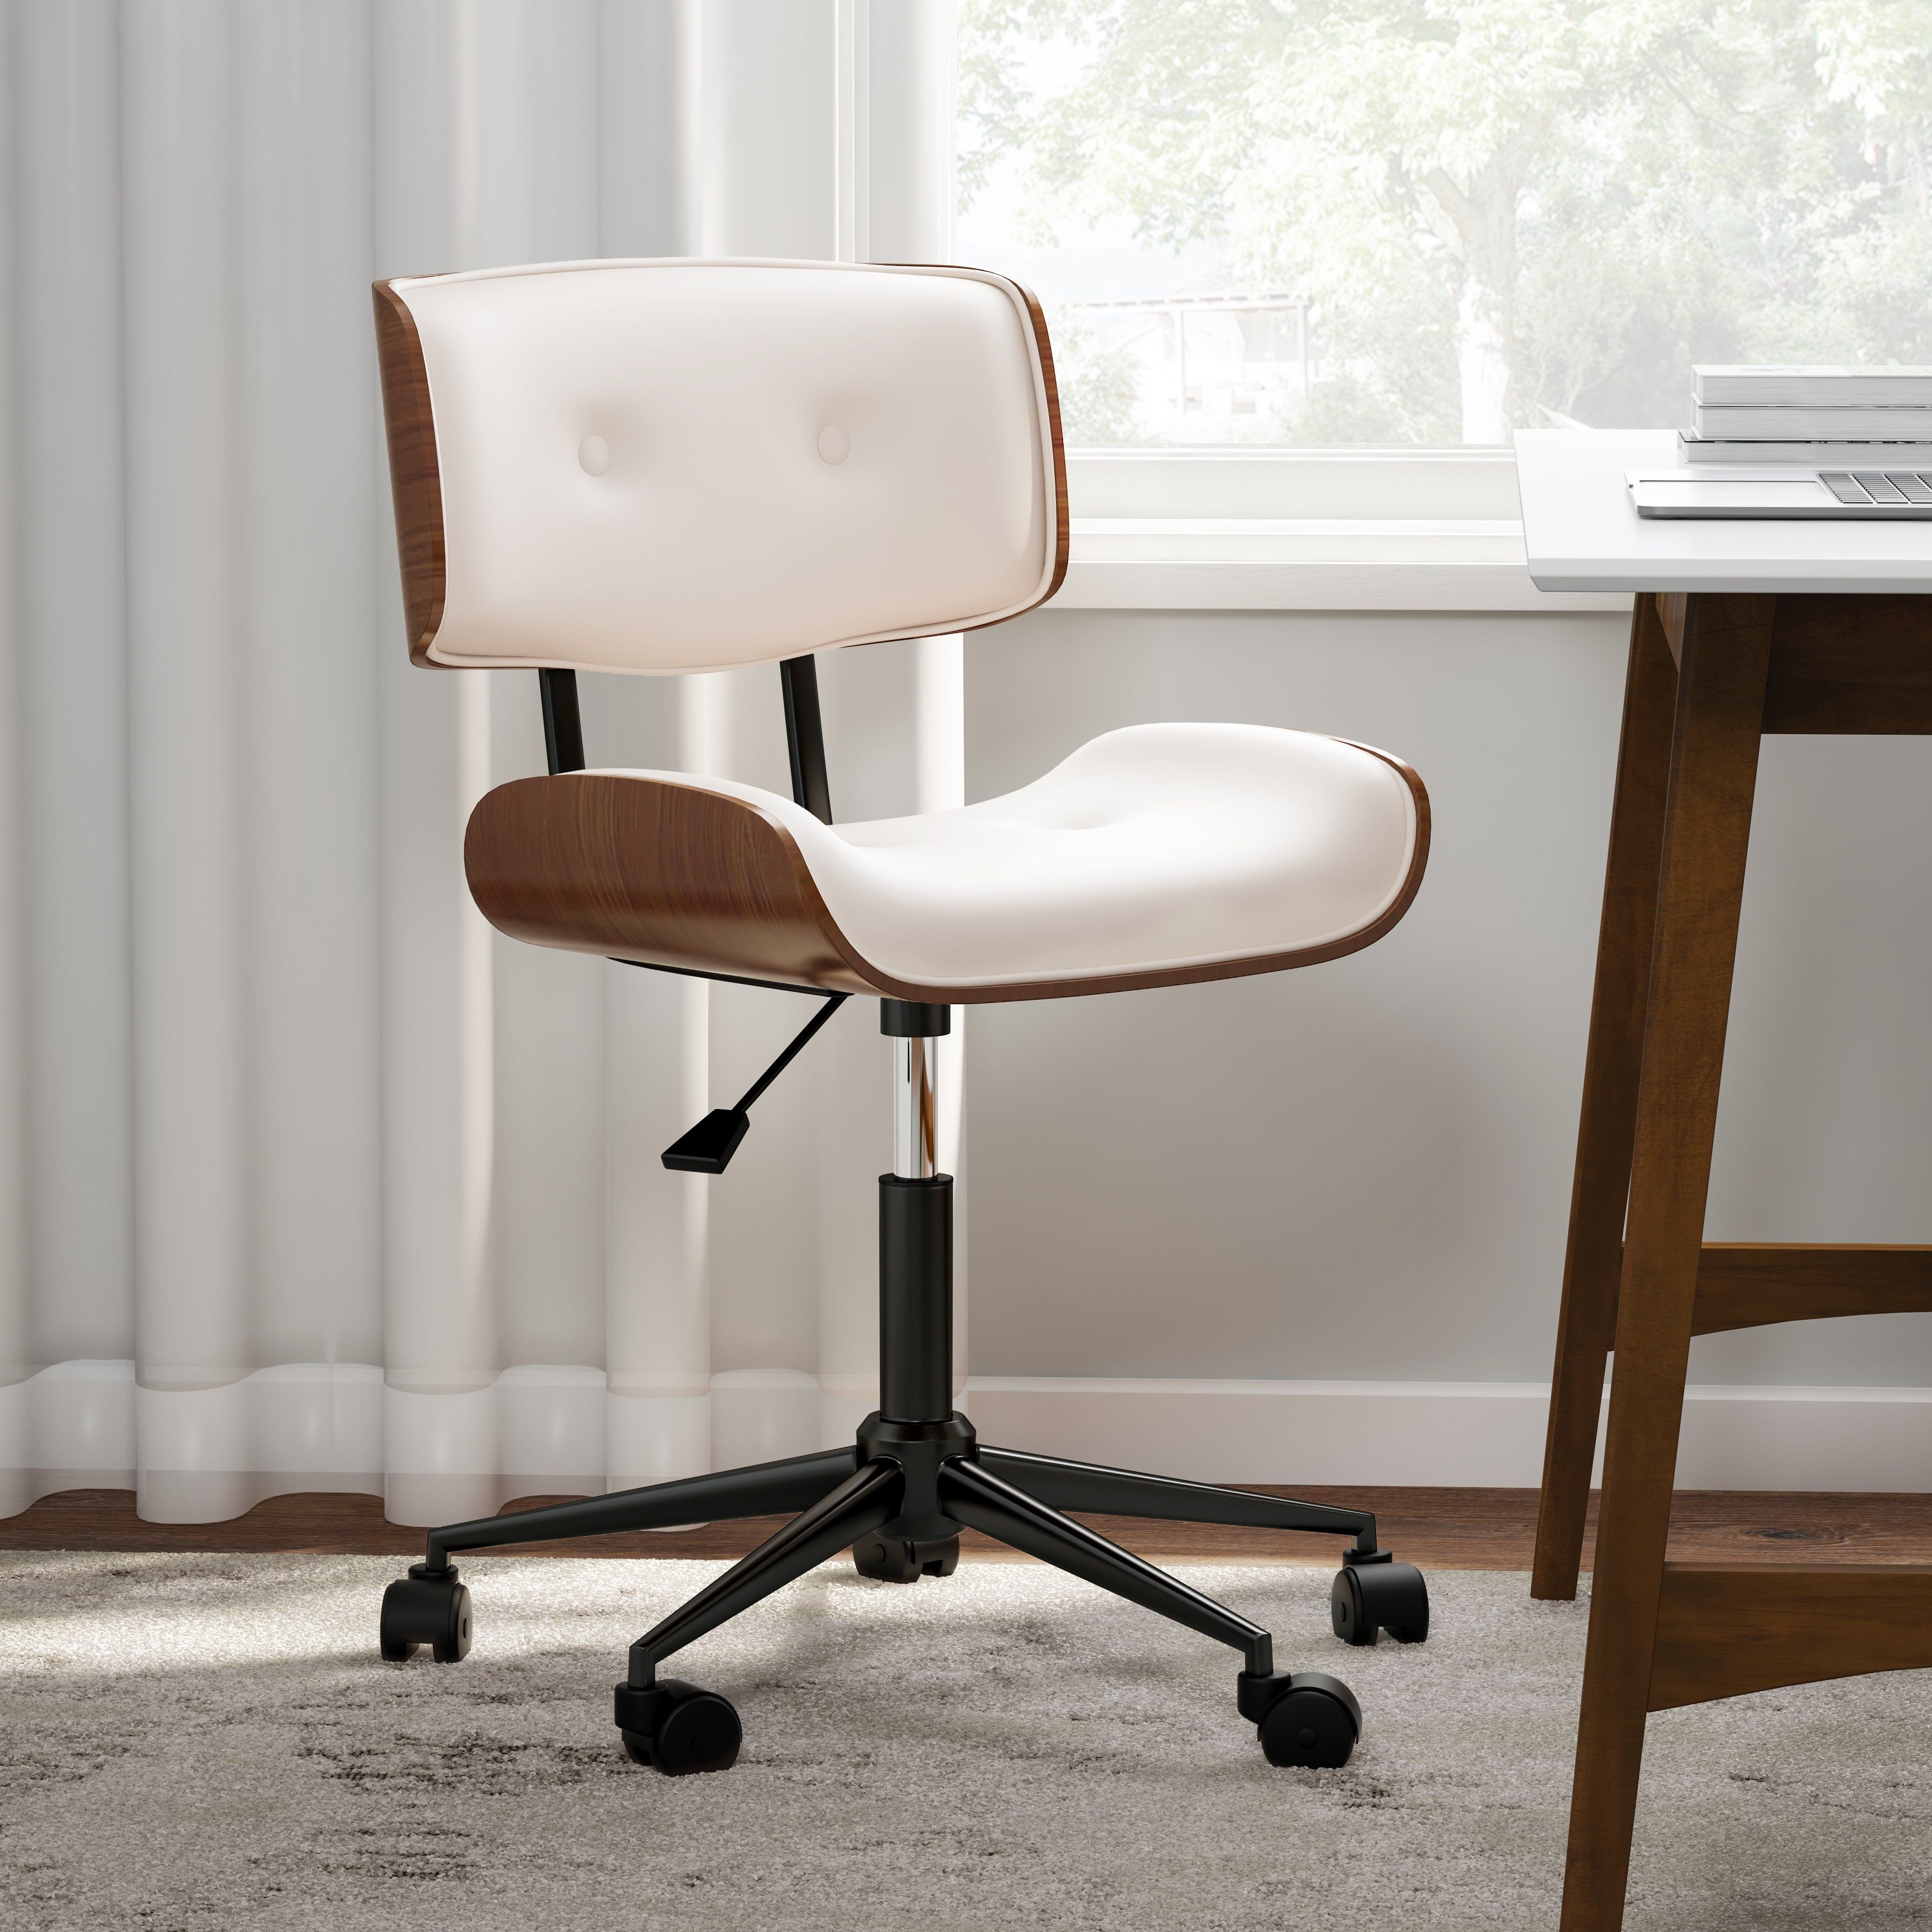 Overstock Com Online Shopping Bedding Furniture Electronics Jewelry Clothing More Mid Century Modern Office Chair Modern Office Chair Mid Century Modern Office